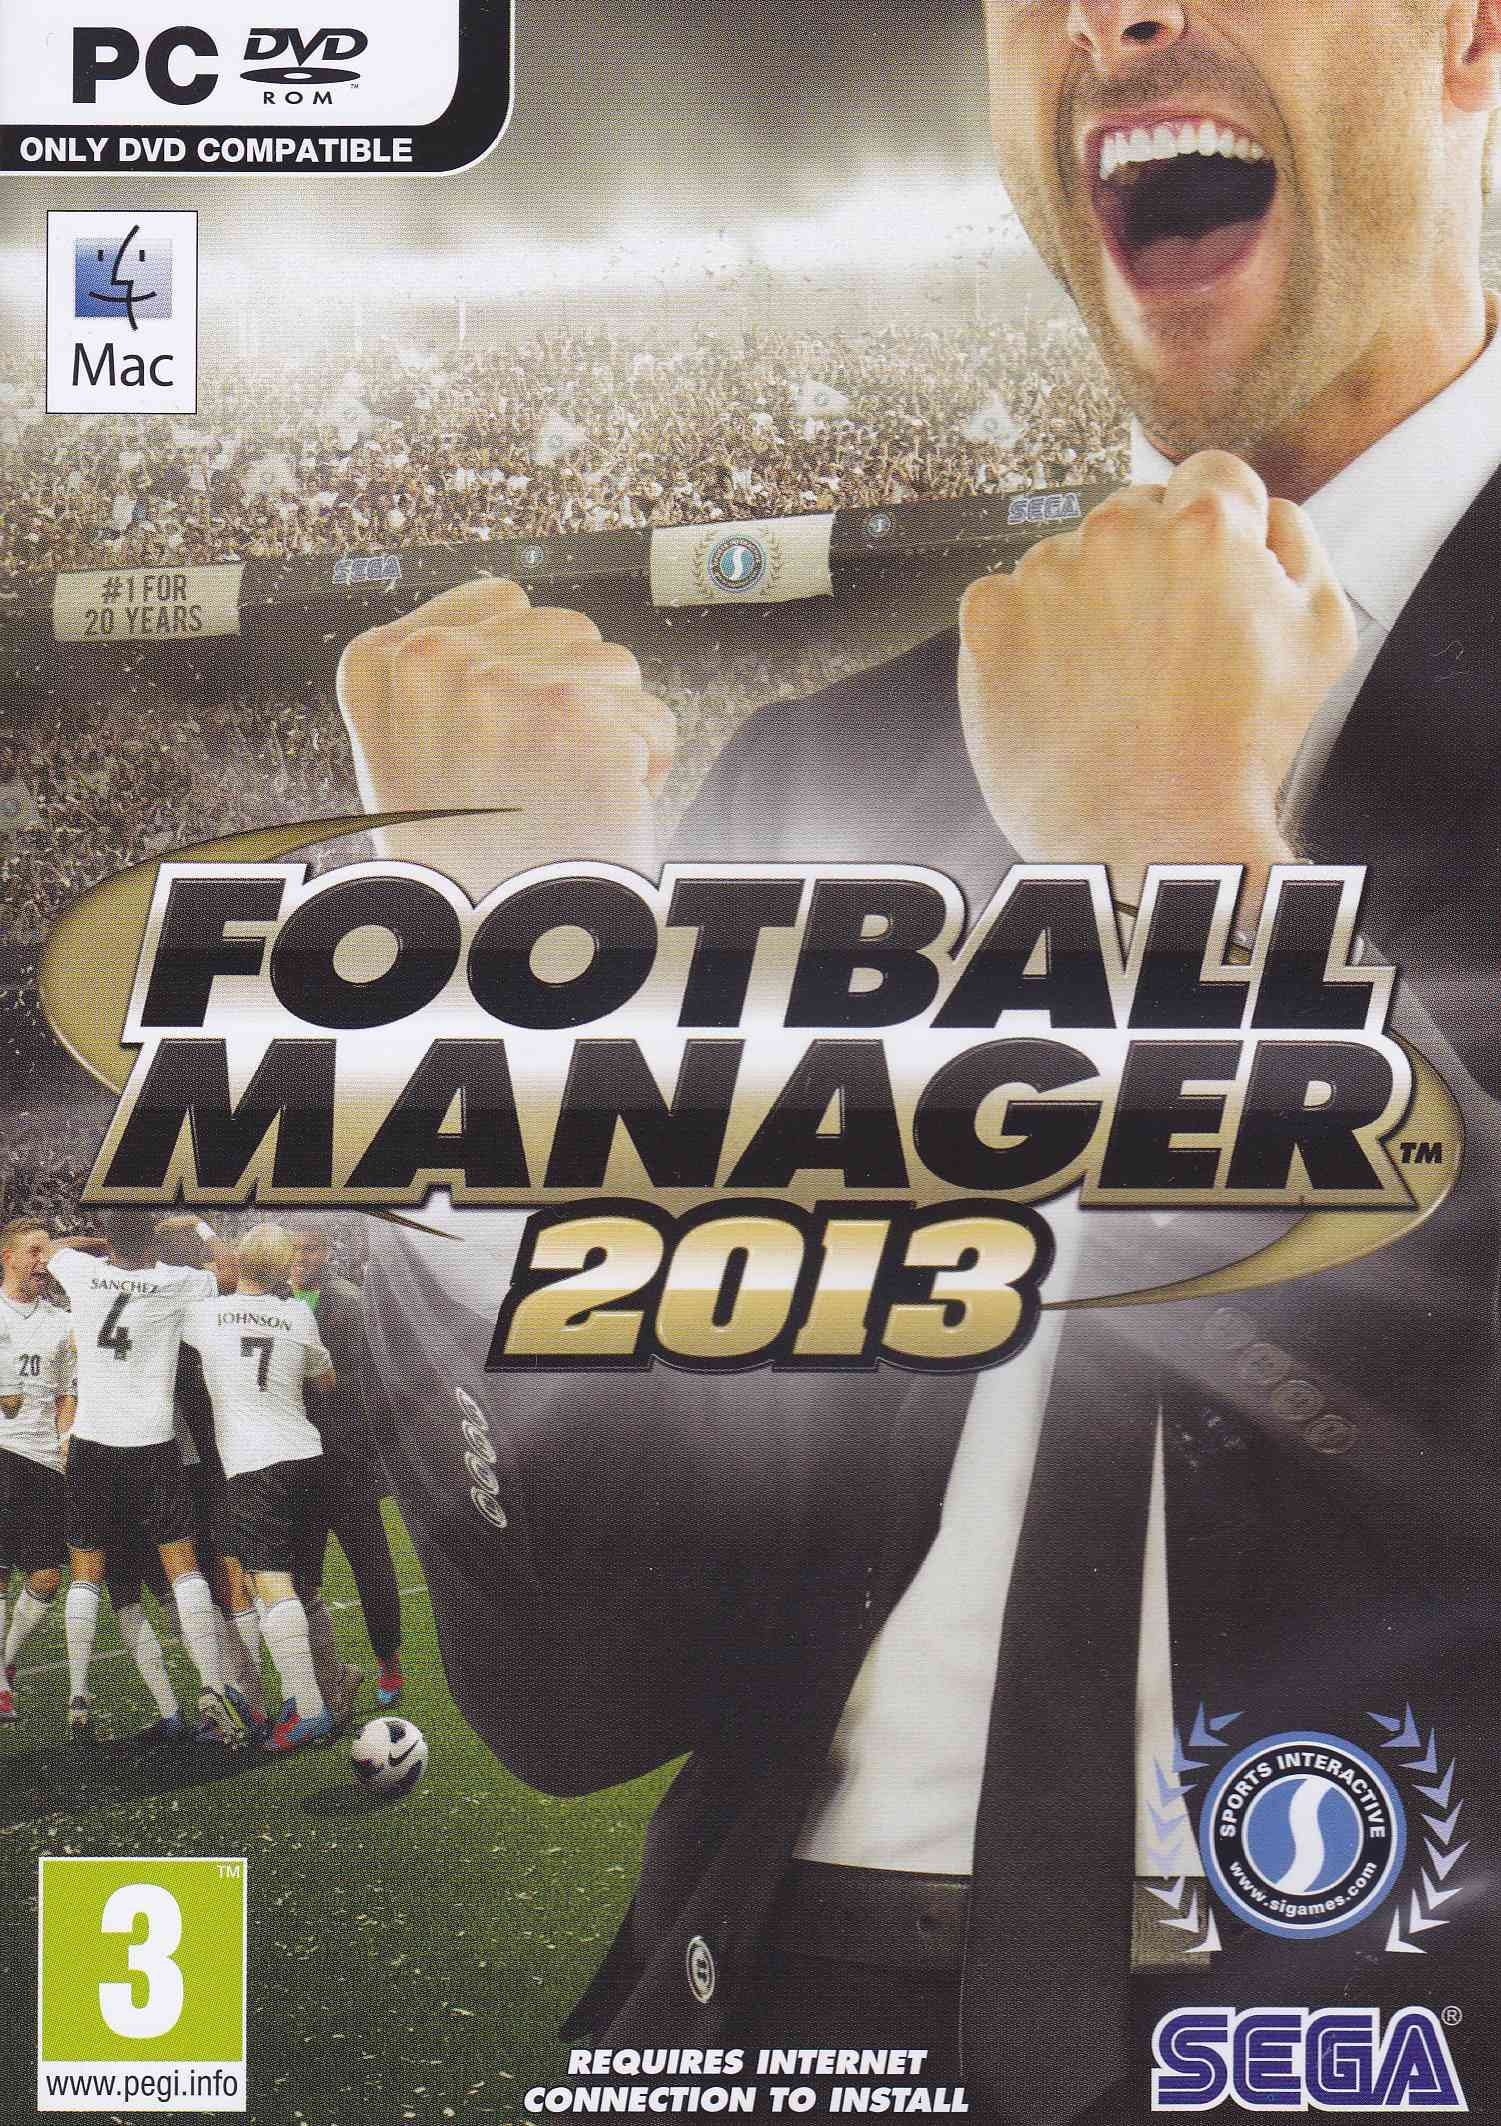 Amazon com: Football Manager 2013 PC Mac: Video Games